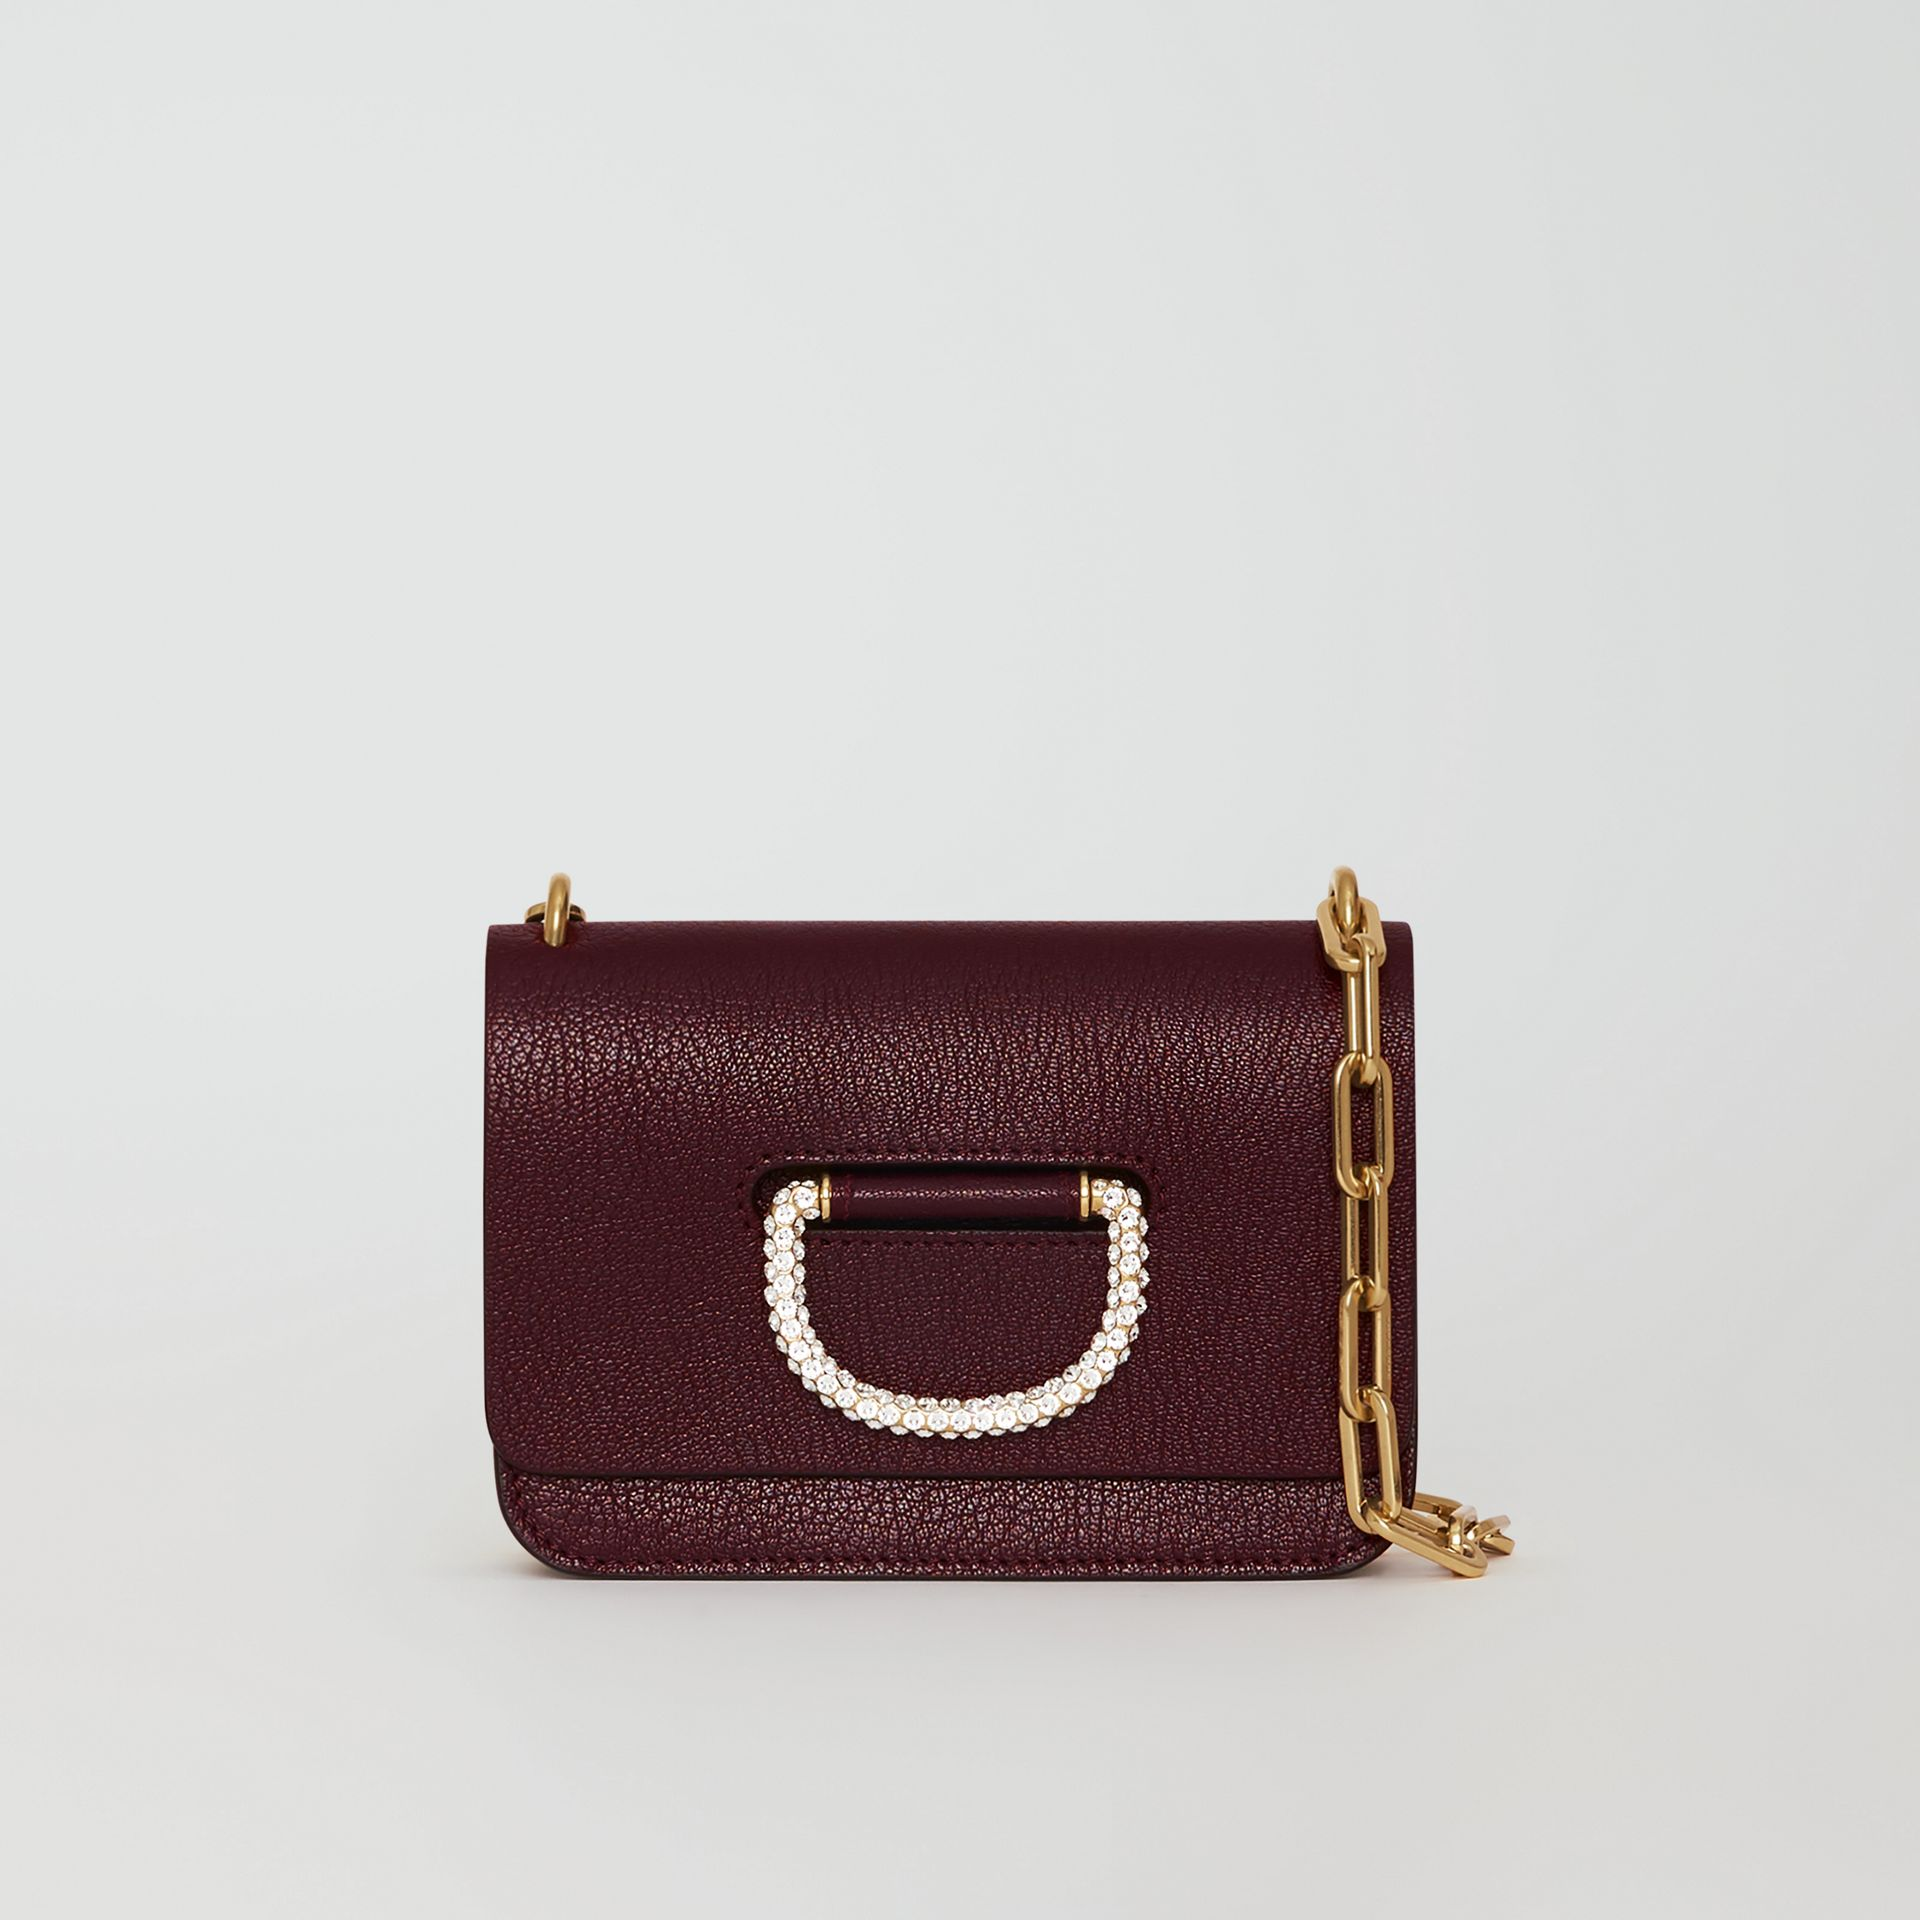 Borsa The D-ring mini in pelle con cristalli (Rosso Violetto Intenso) - Donna | Burberry - immagine della galleria 0